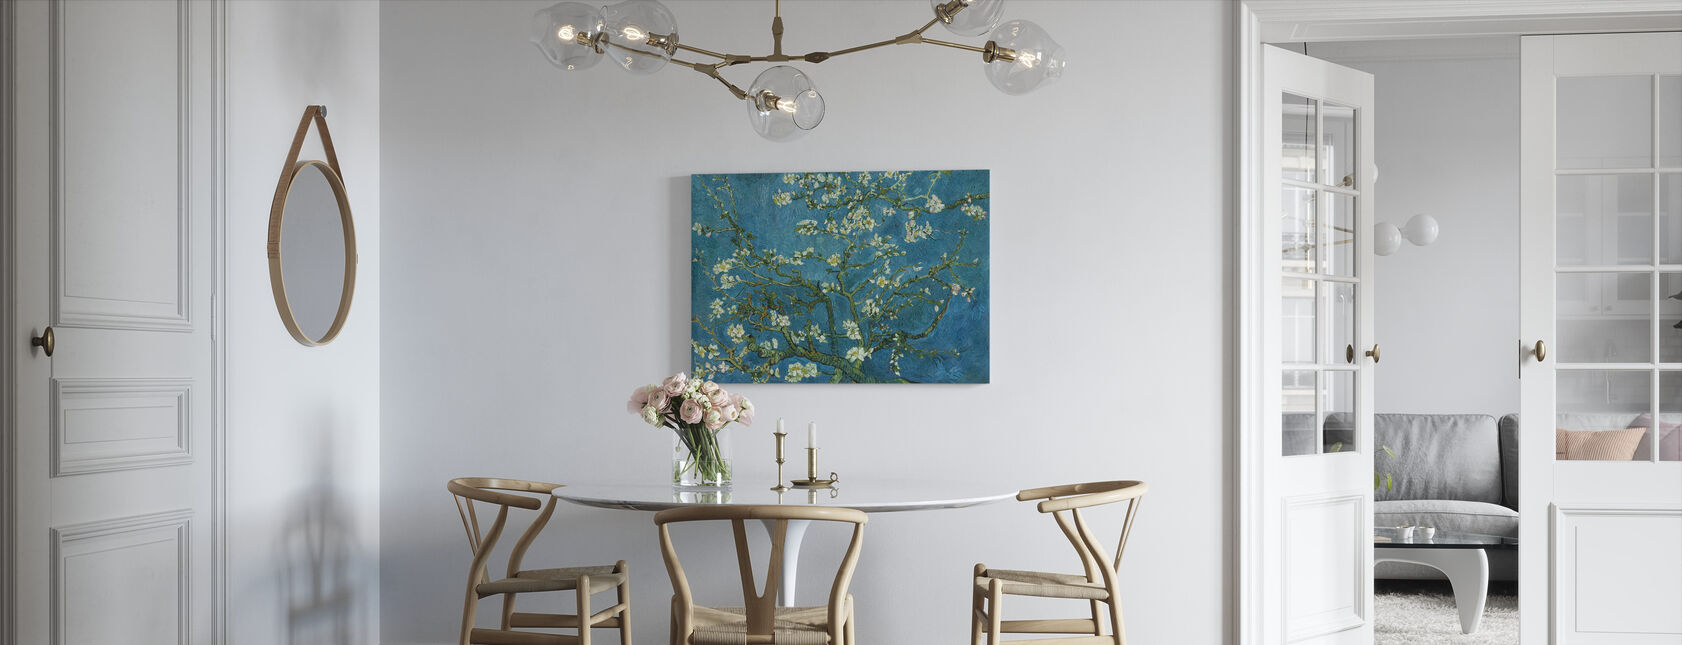 Almond Blossom - Canvas print - Kitchen